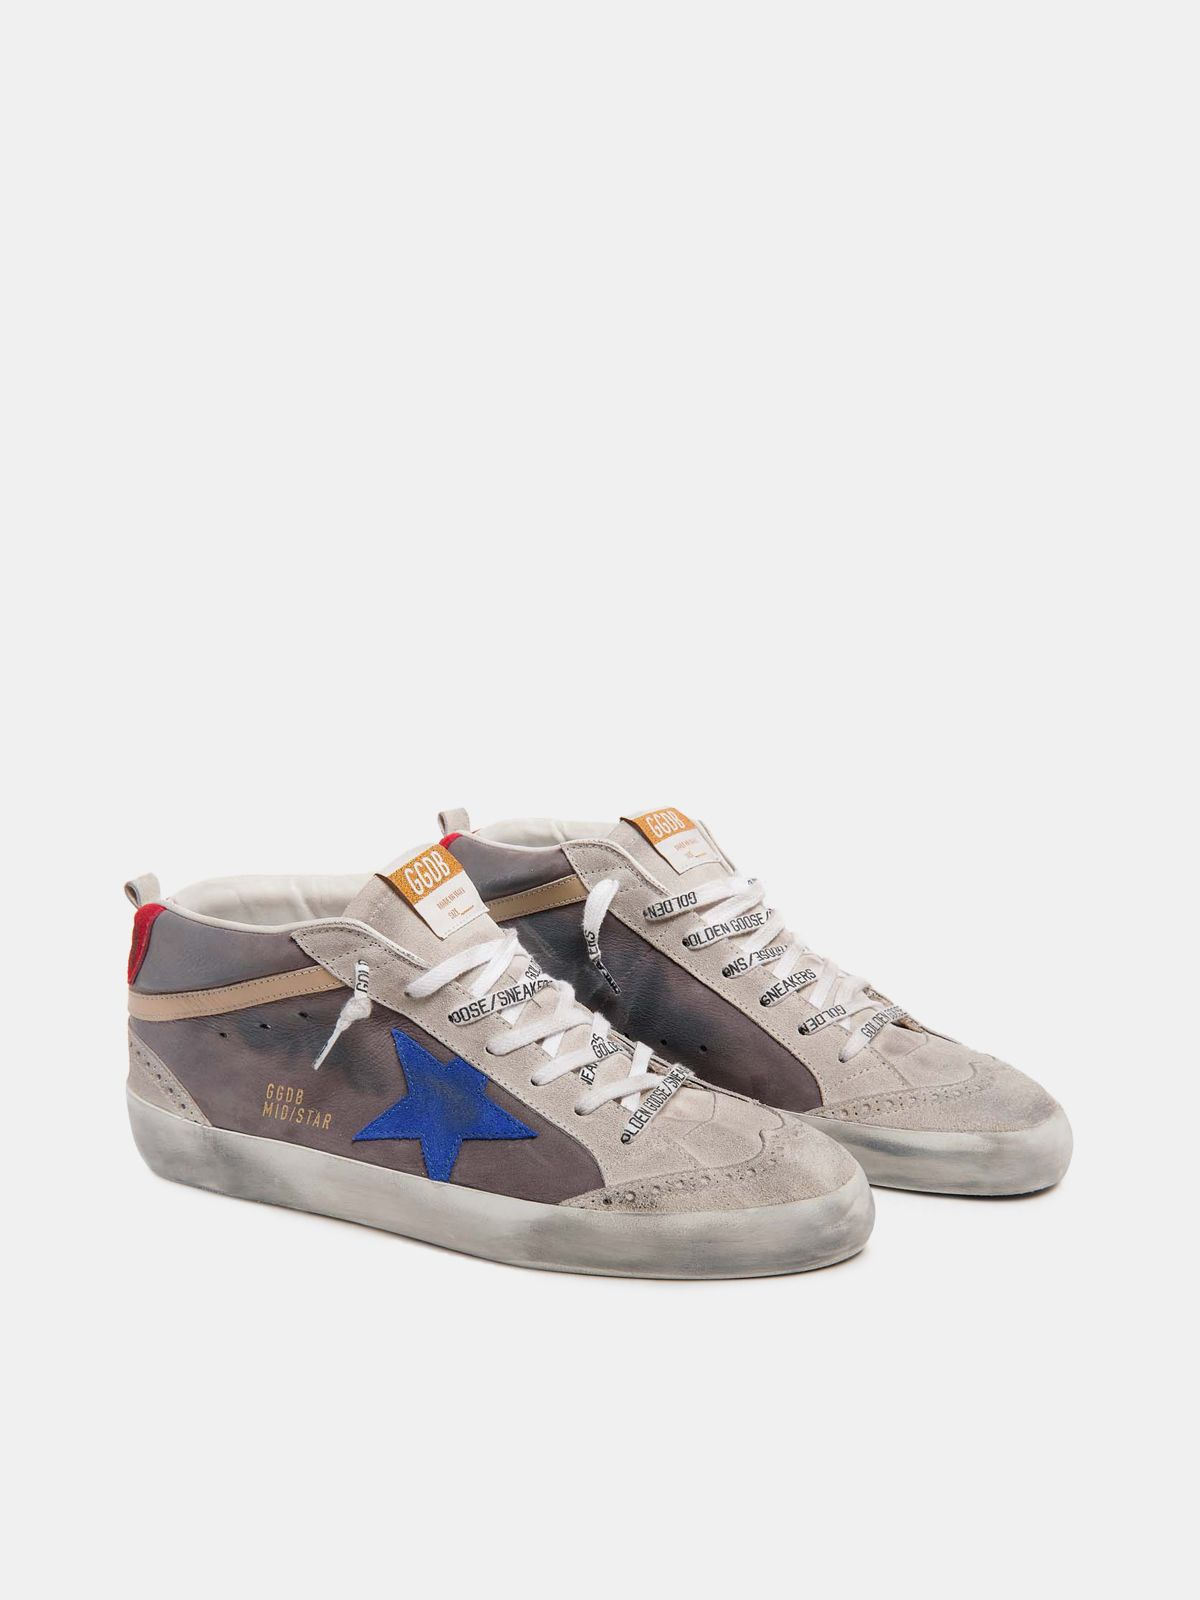 Golden Goose - Mid Star sneakers in nubuck with blue star in